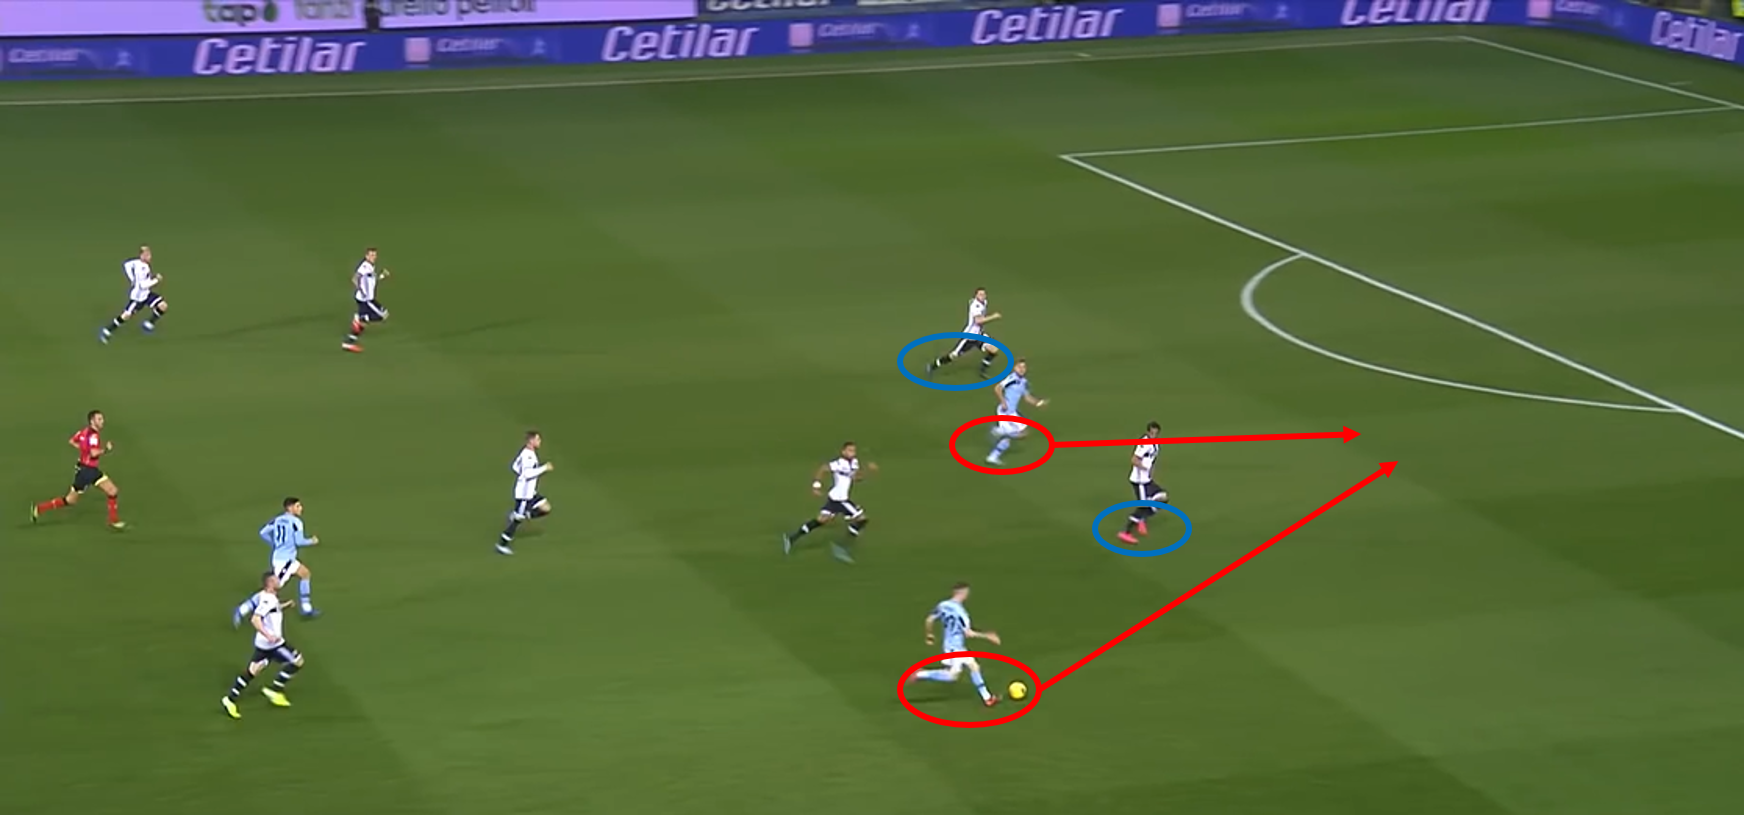 Serie A 2019/20: Parma vs Lazio – tactical analysis tactics